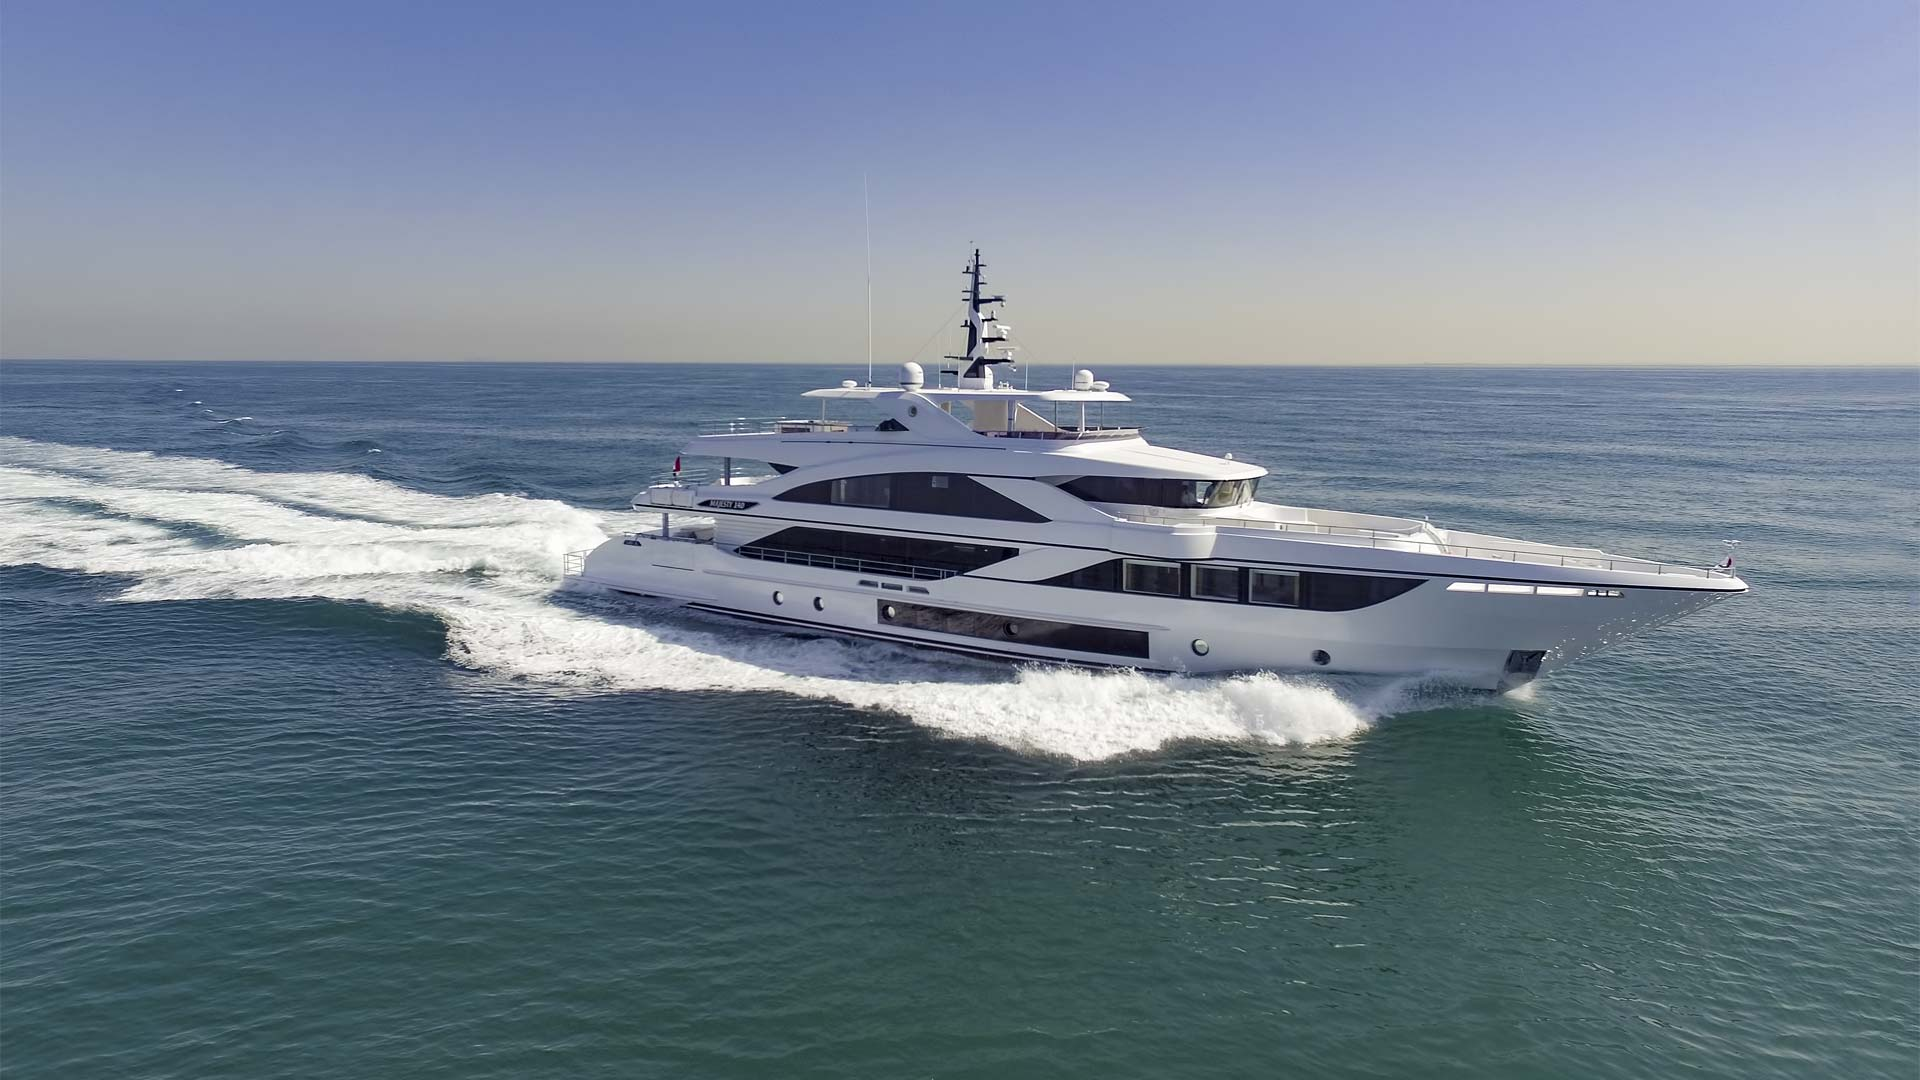 Majesty 140 - Majesty Superyachts by - Drettmann Yachts